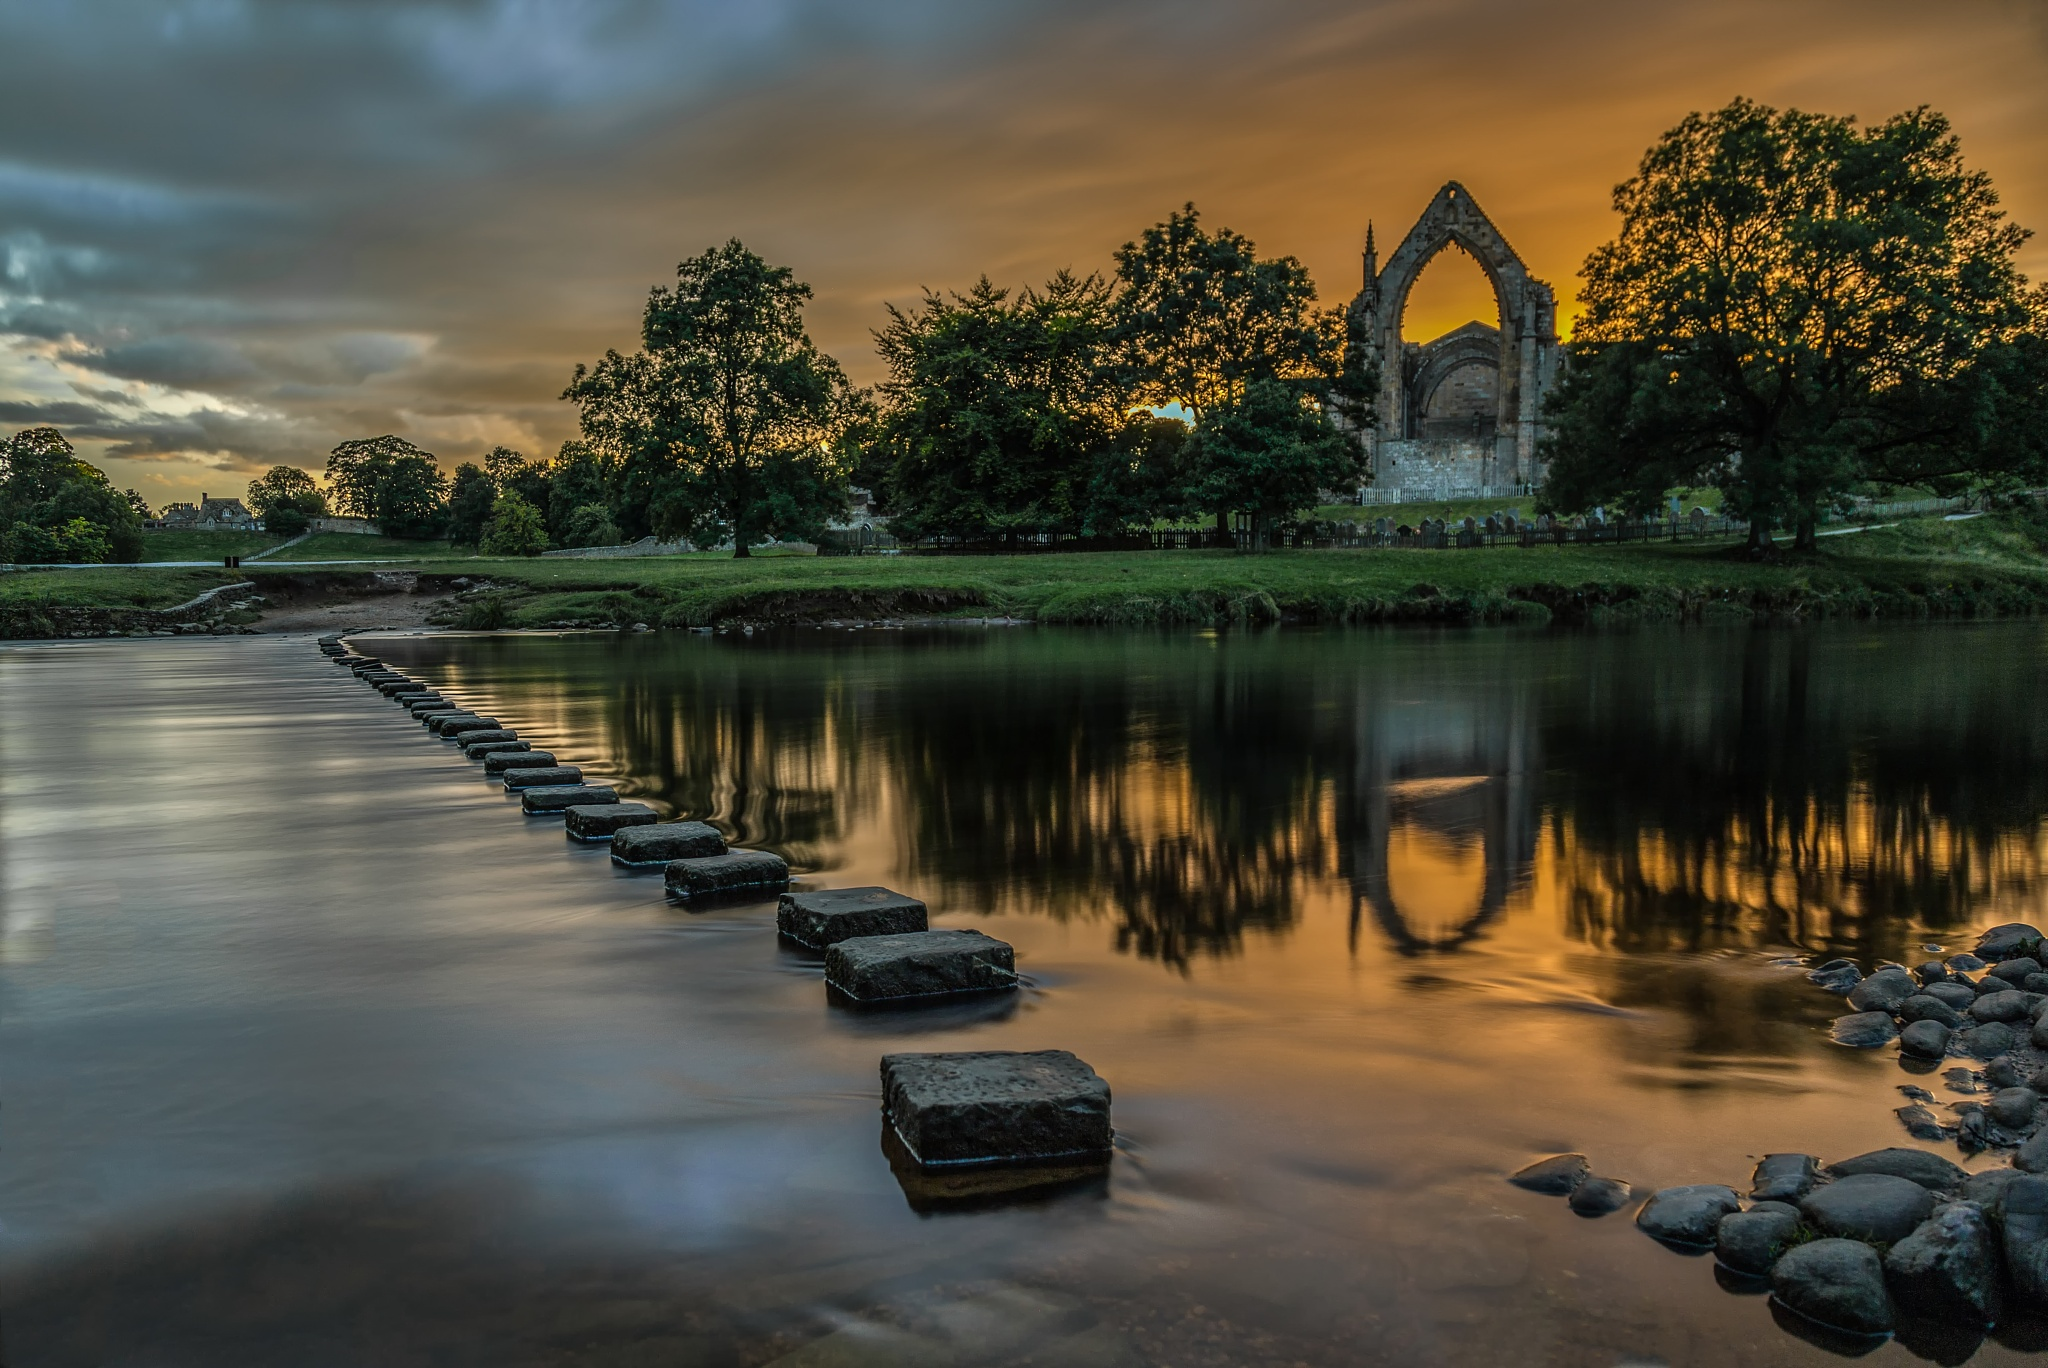 The Old Abbey by Peter Wilson